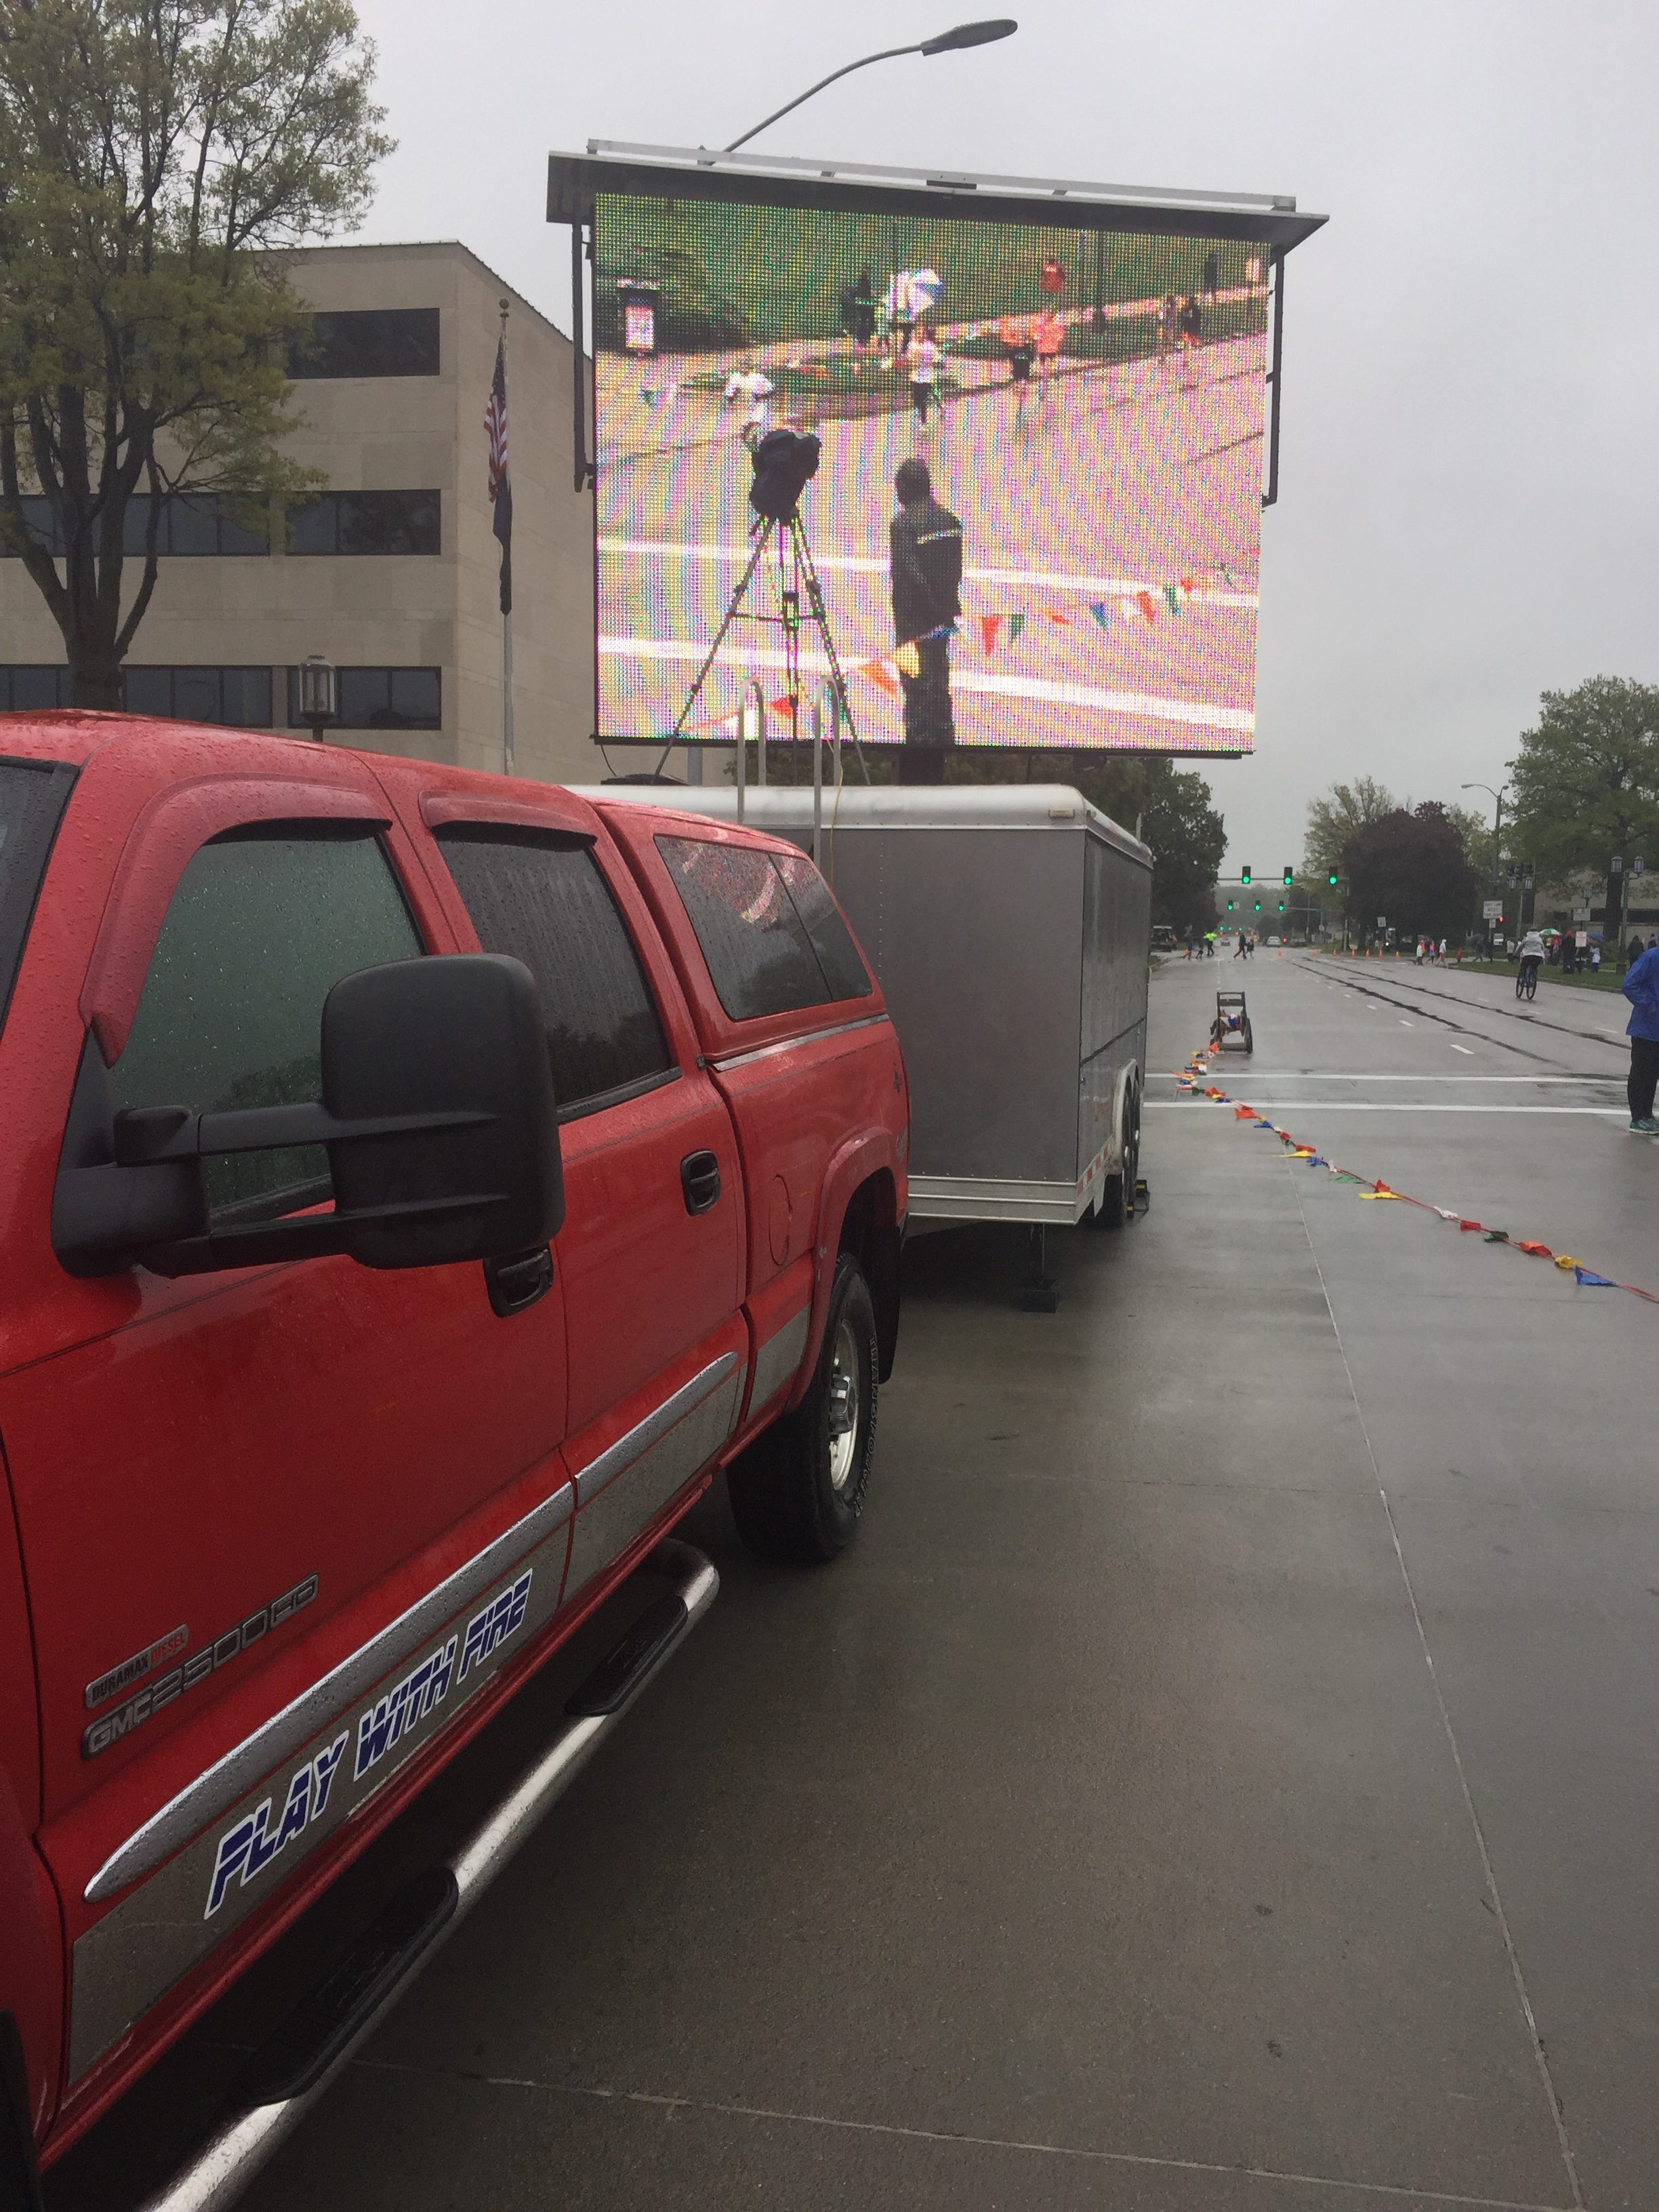 led mobile jumbotron video board screens for event rental for outdoor events